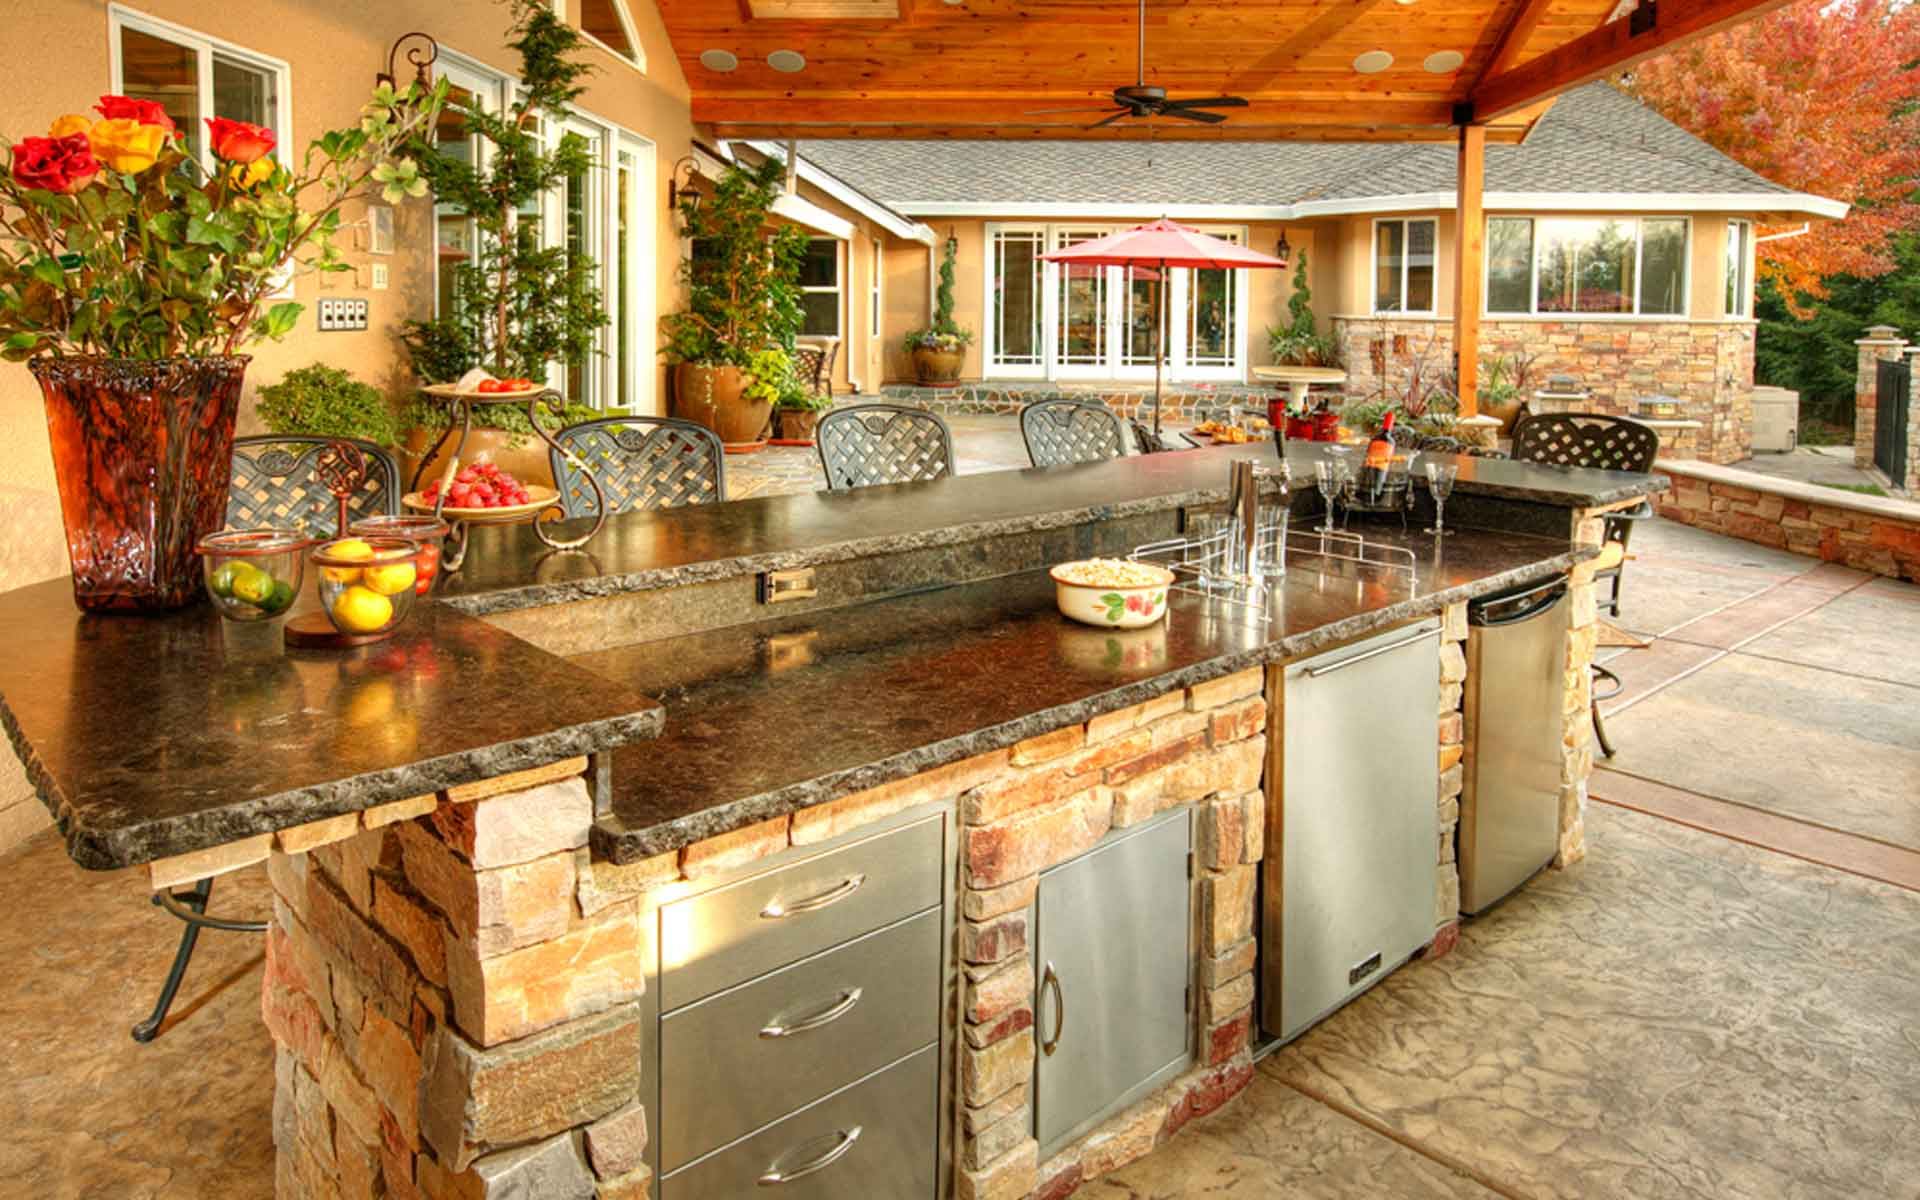 Outdoor Living Designs - CKB Creations on Outdoor Kitchen Living Spaces id=43078